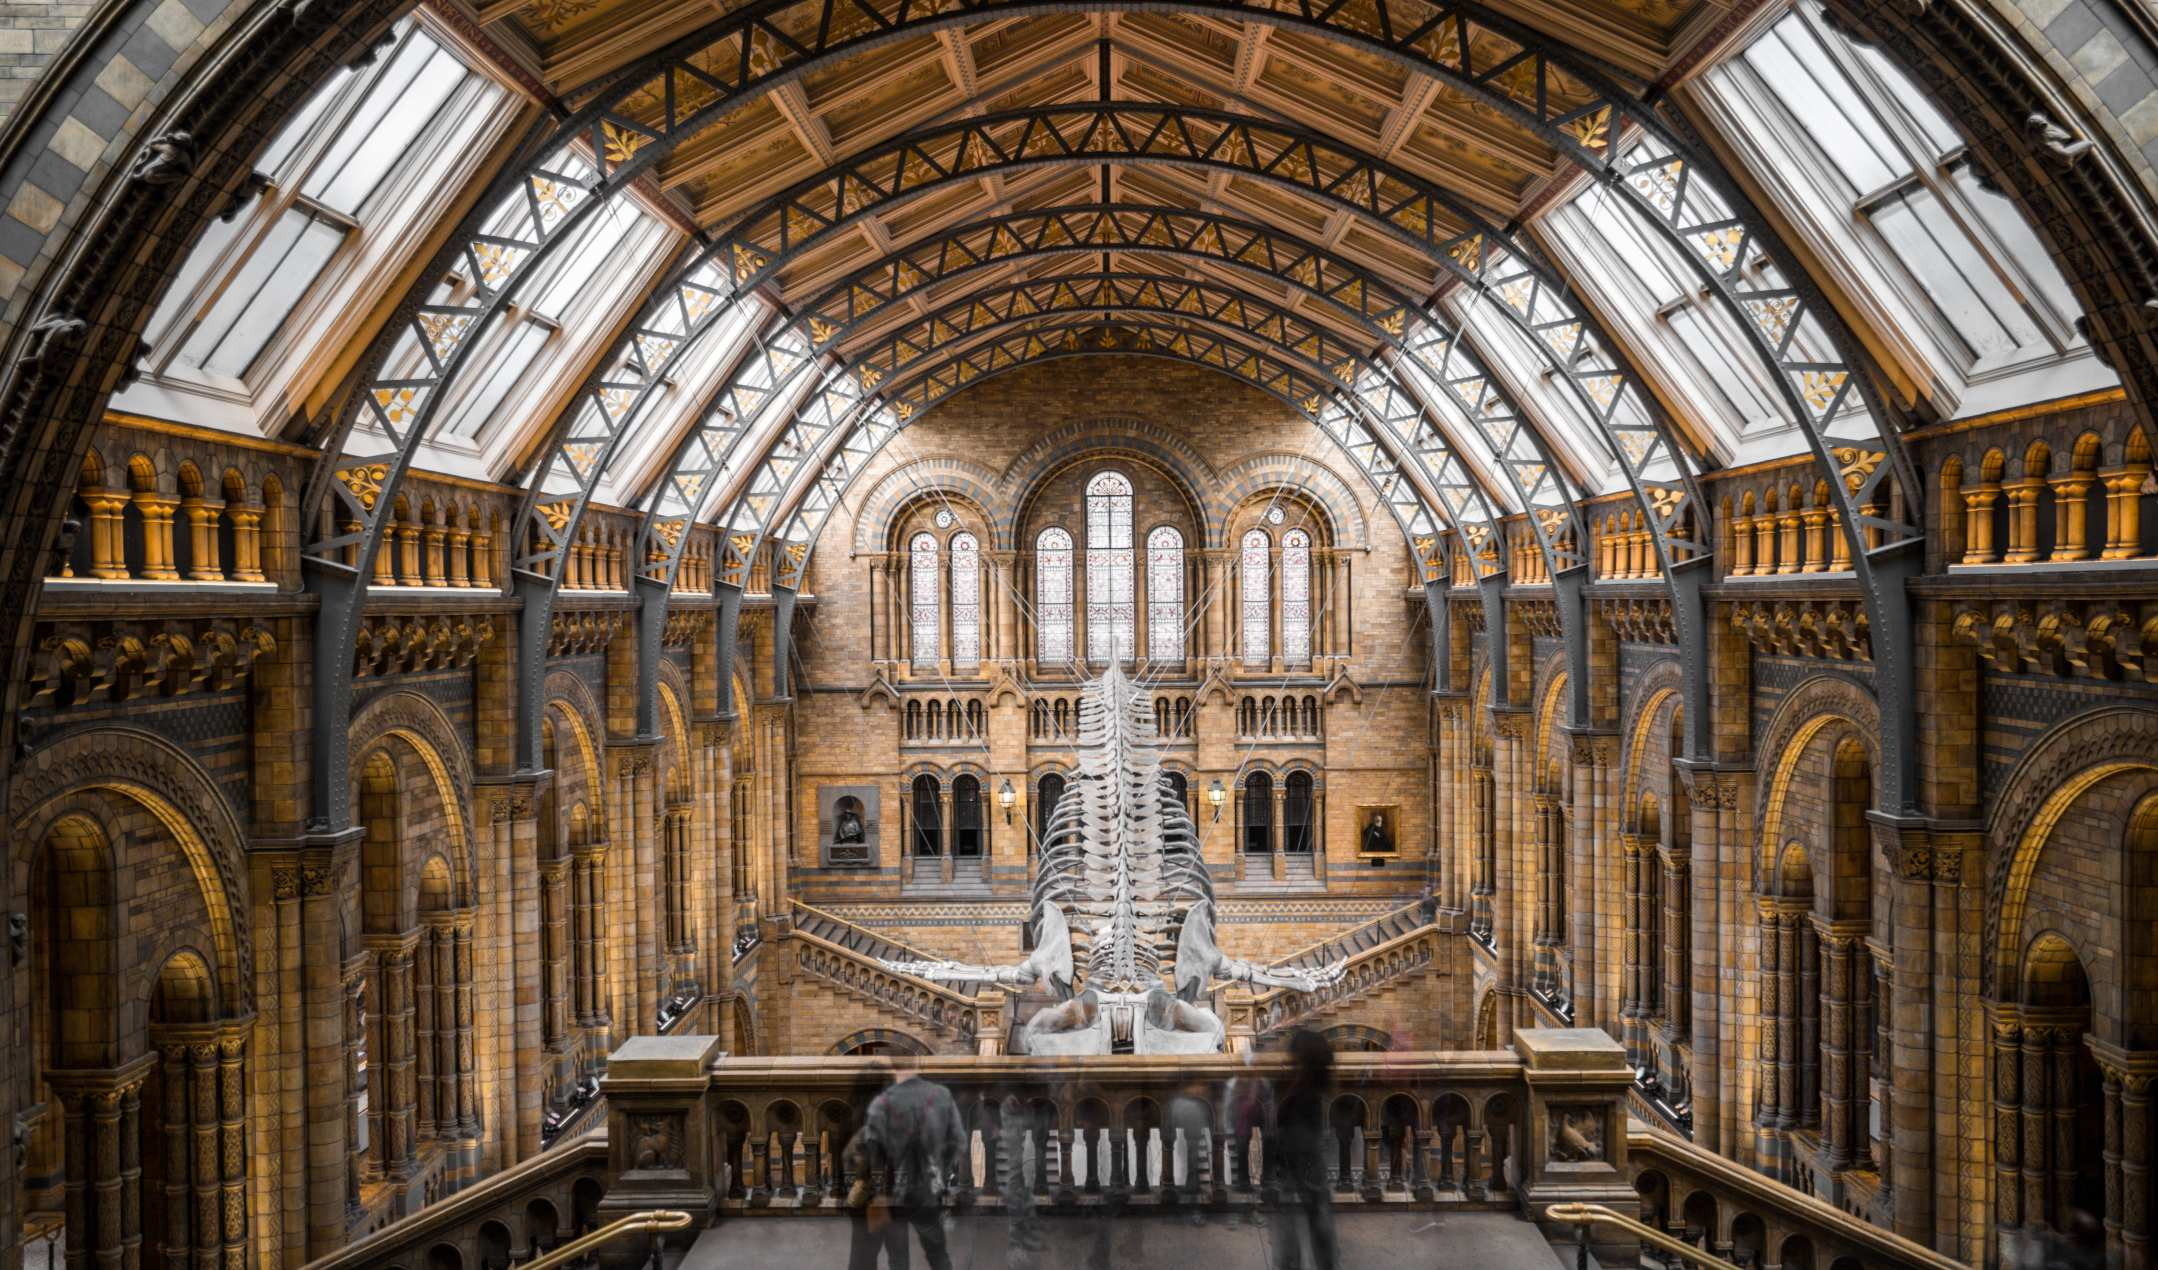 Trip to Natural History Museum